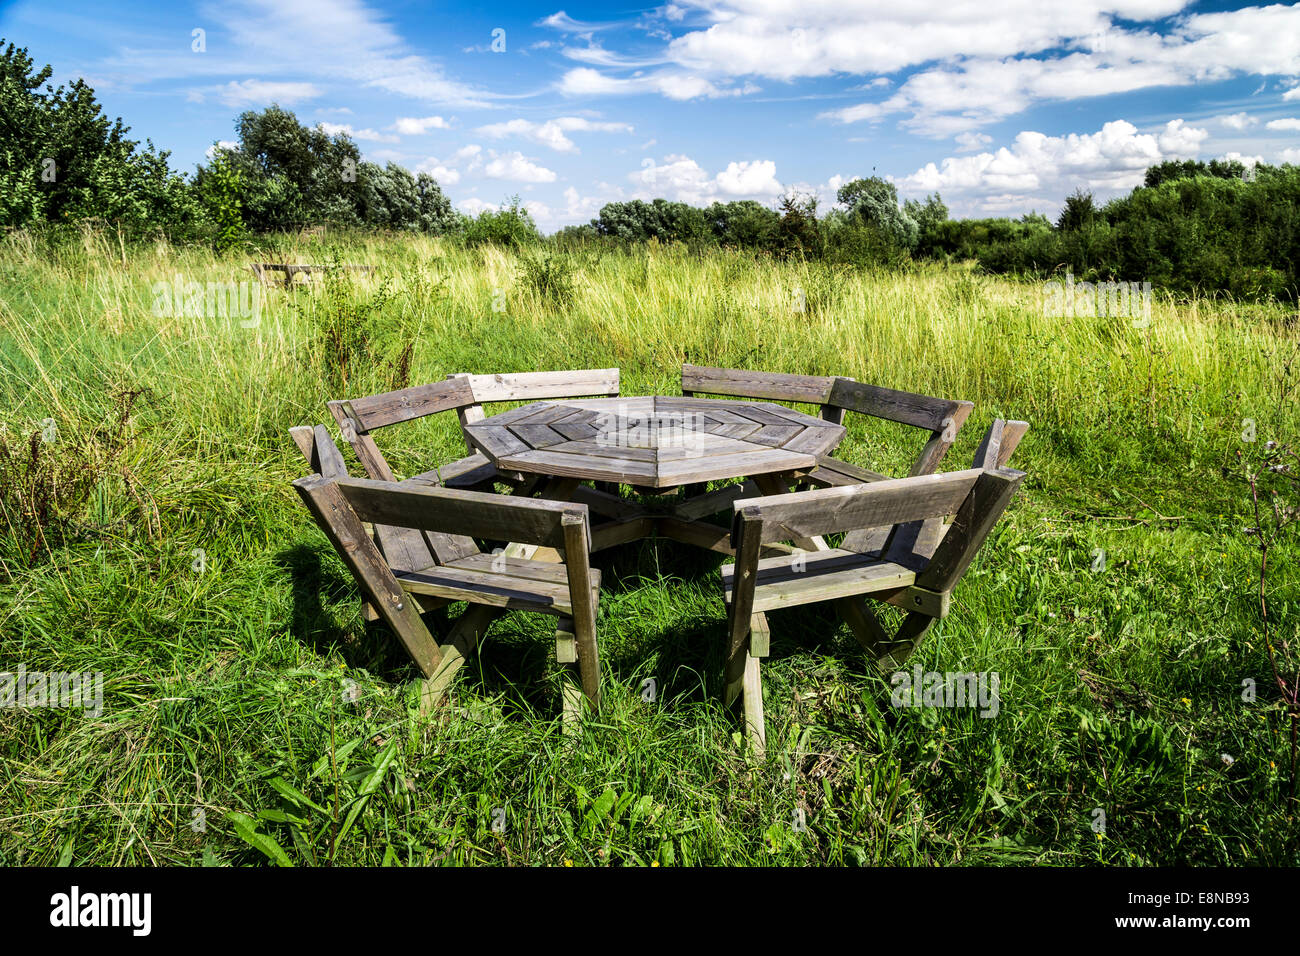 Blue sky with white fluffy clouds and a weathered wooden picnic table in uncultivated meadow in summer - Stock Image